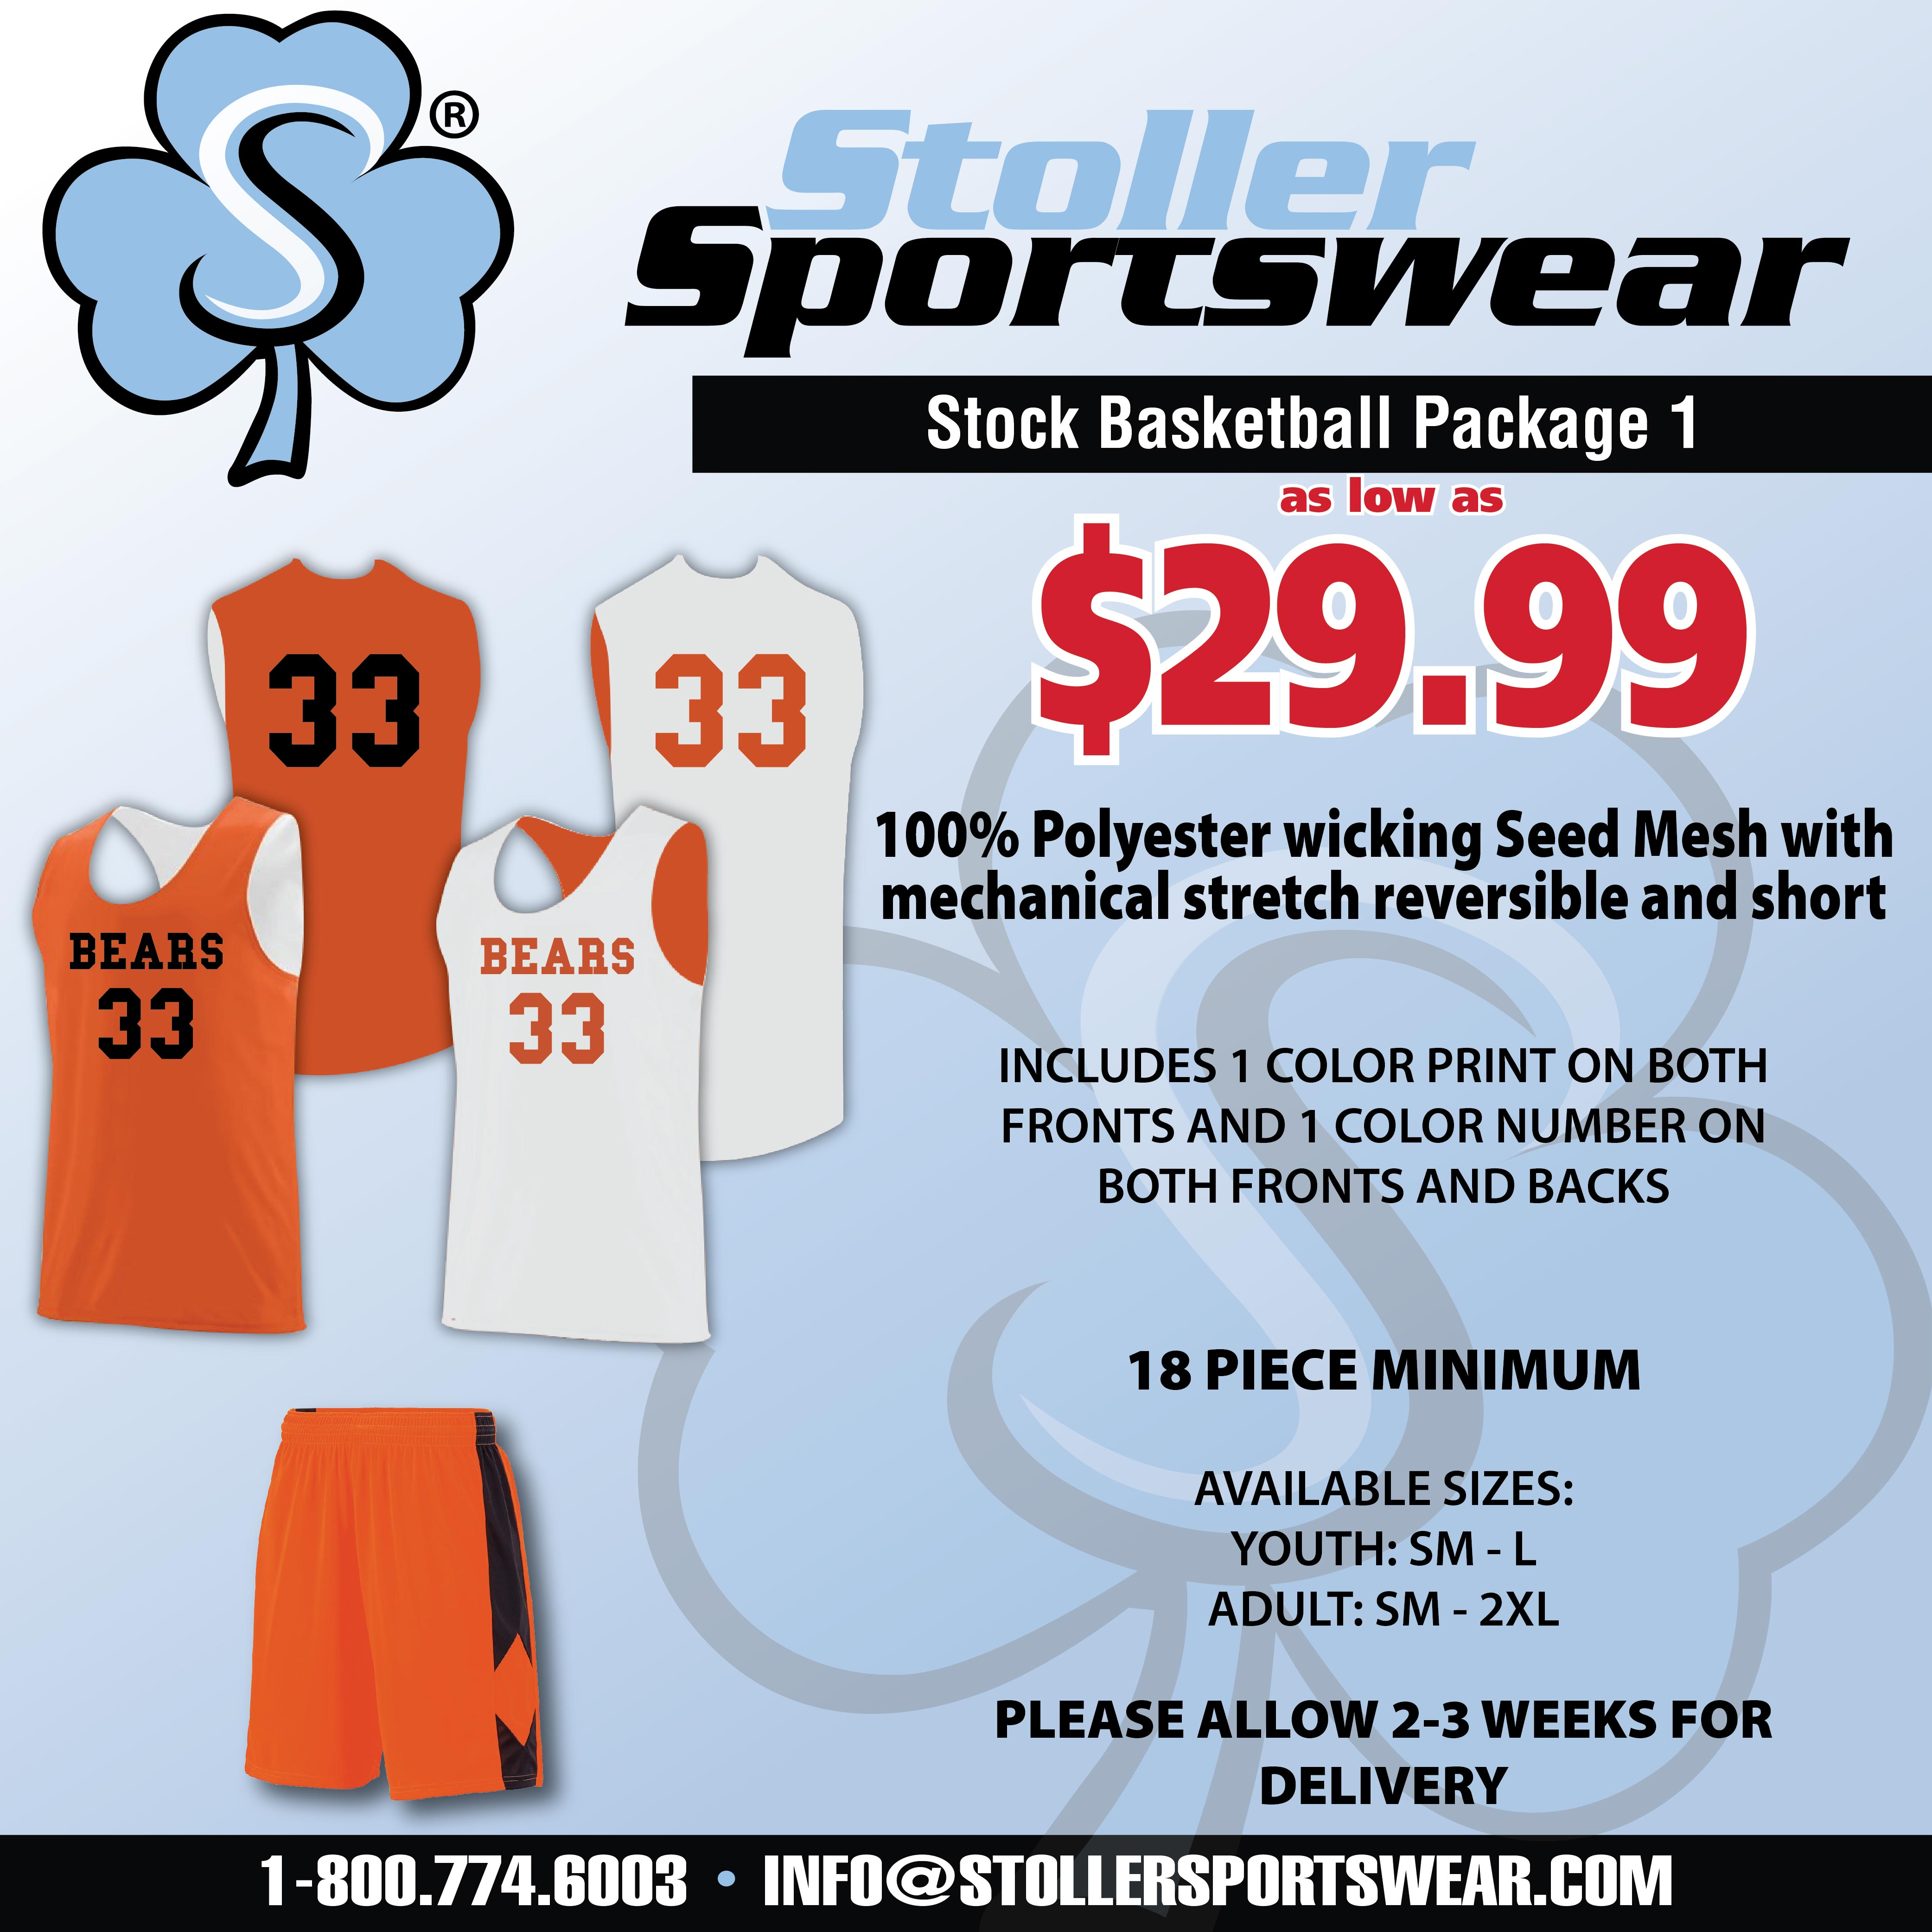 Stock Basketball Package 1